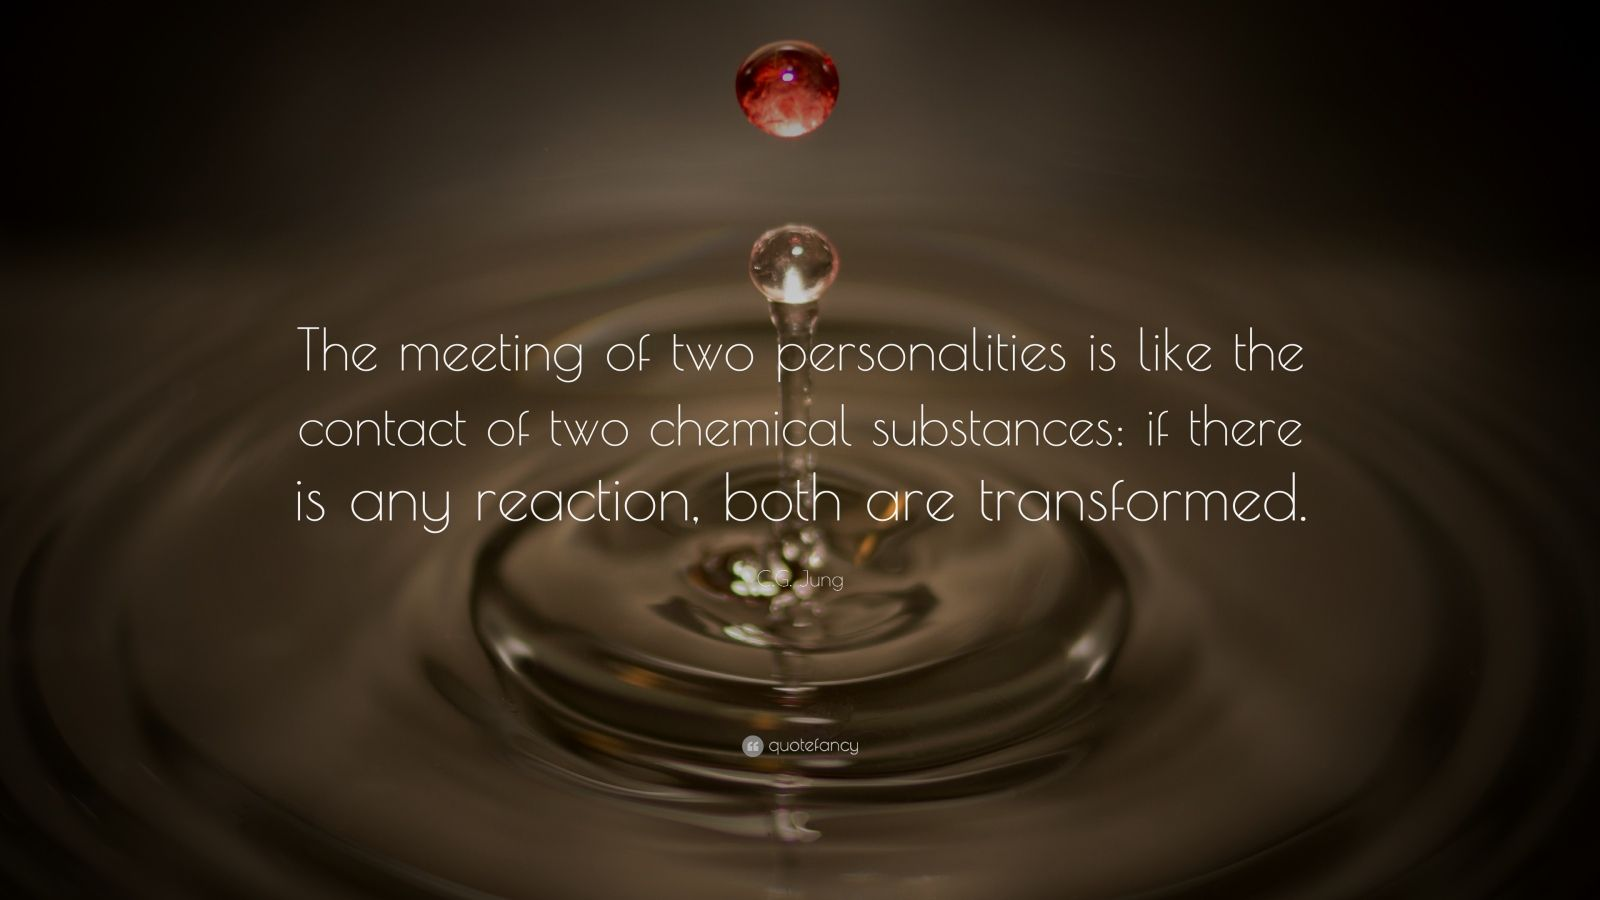 "Relationship Quotes: ""The meeting of two personalities is like the contact of two chemical substances: if there is any reaction, both are transformed."" — C.G. Jung"